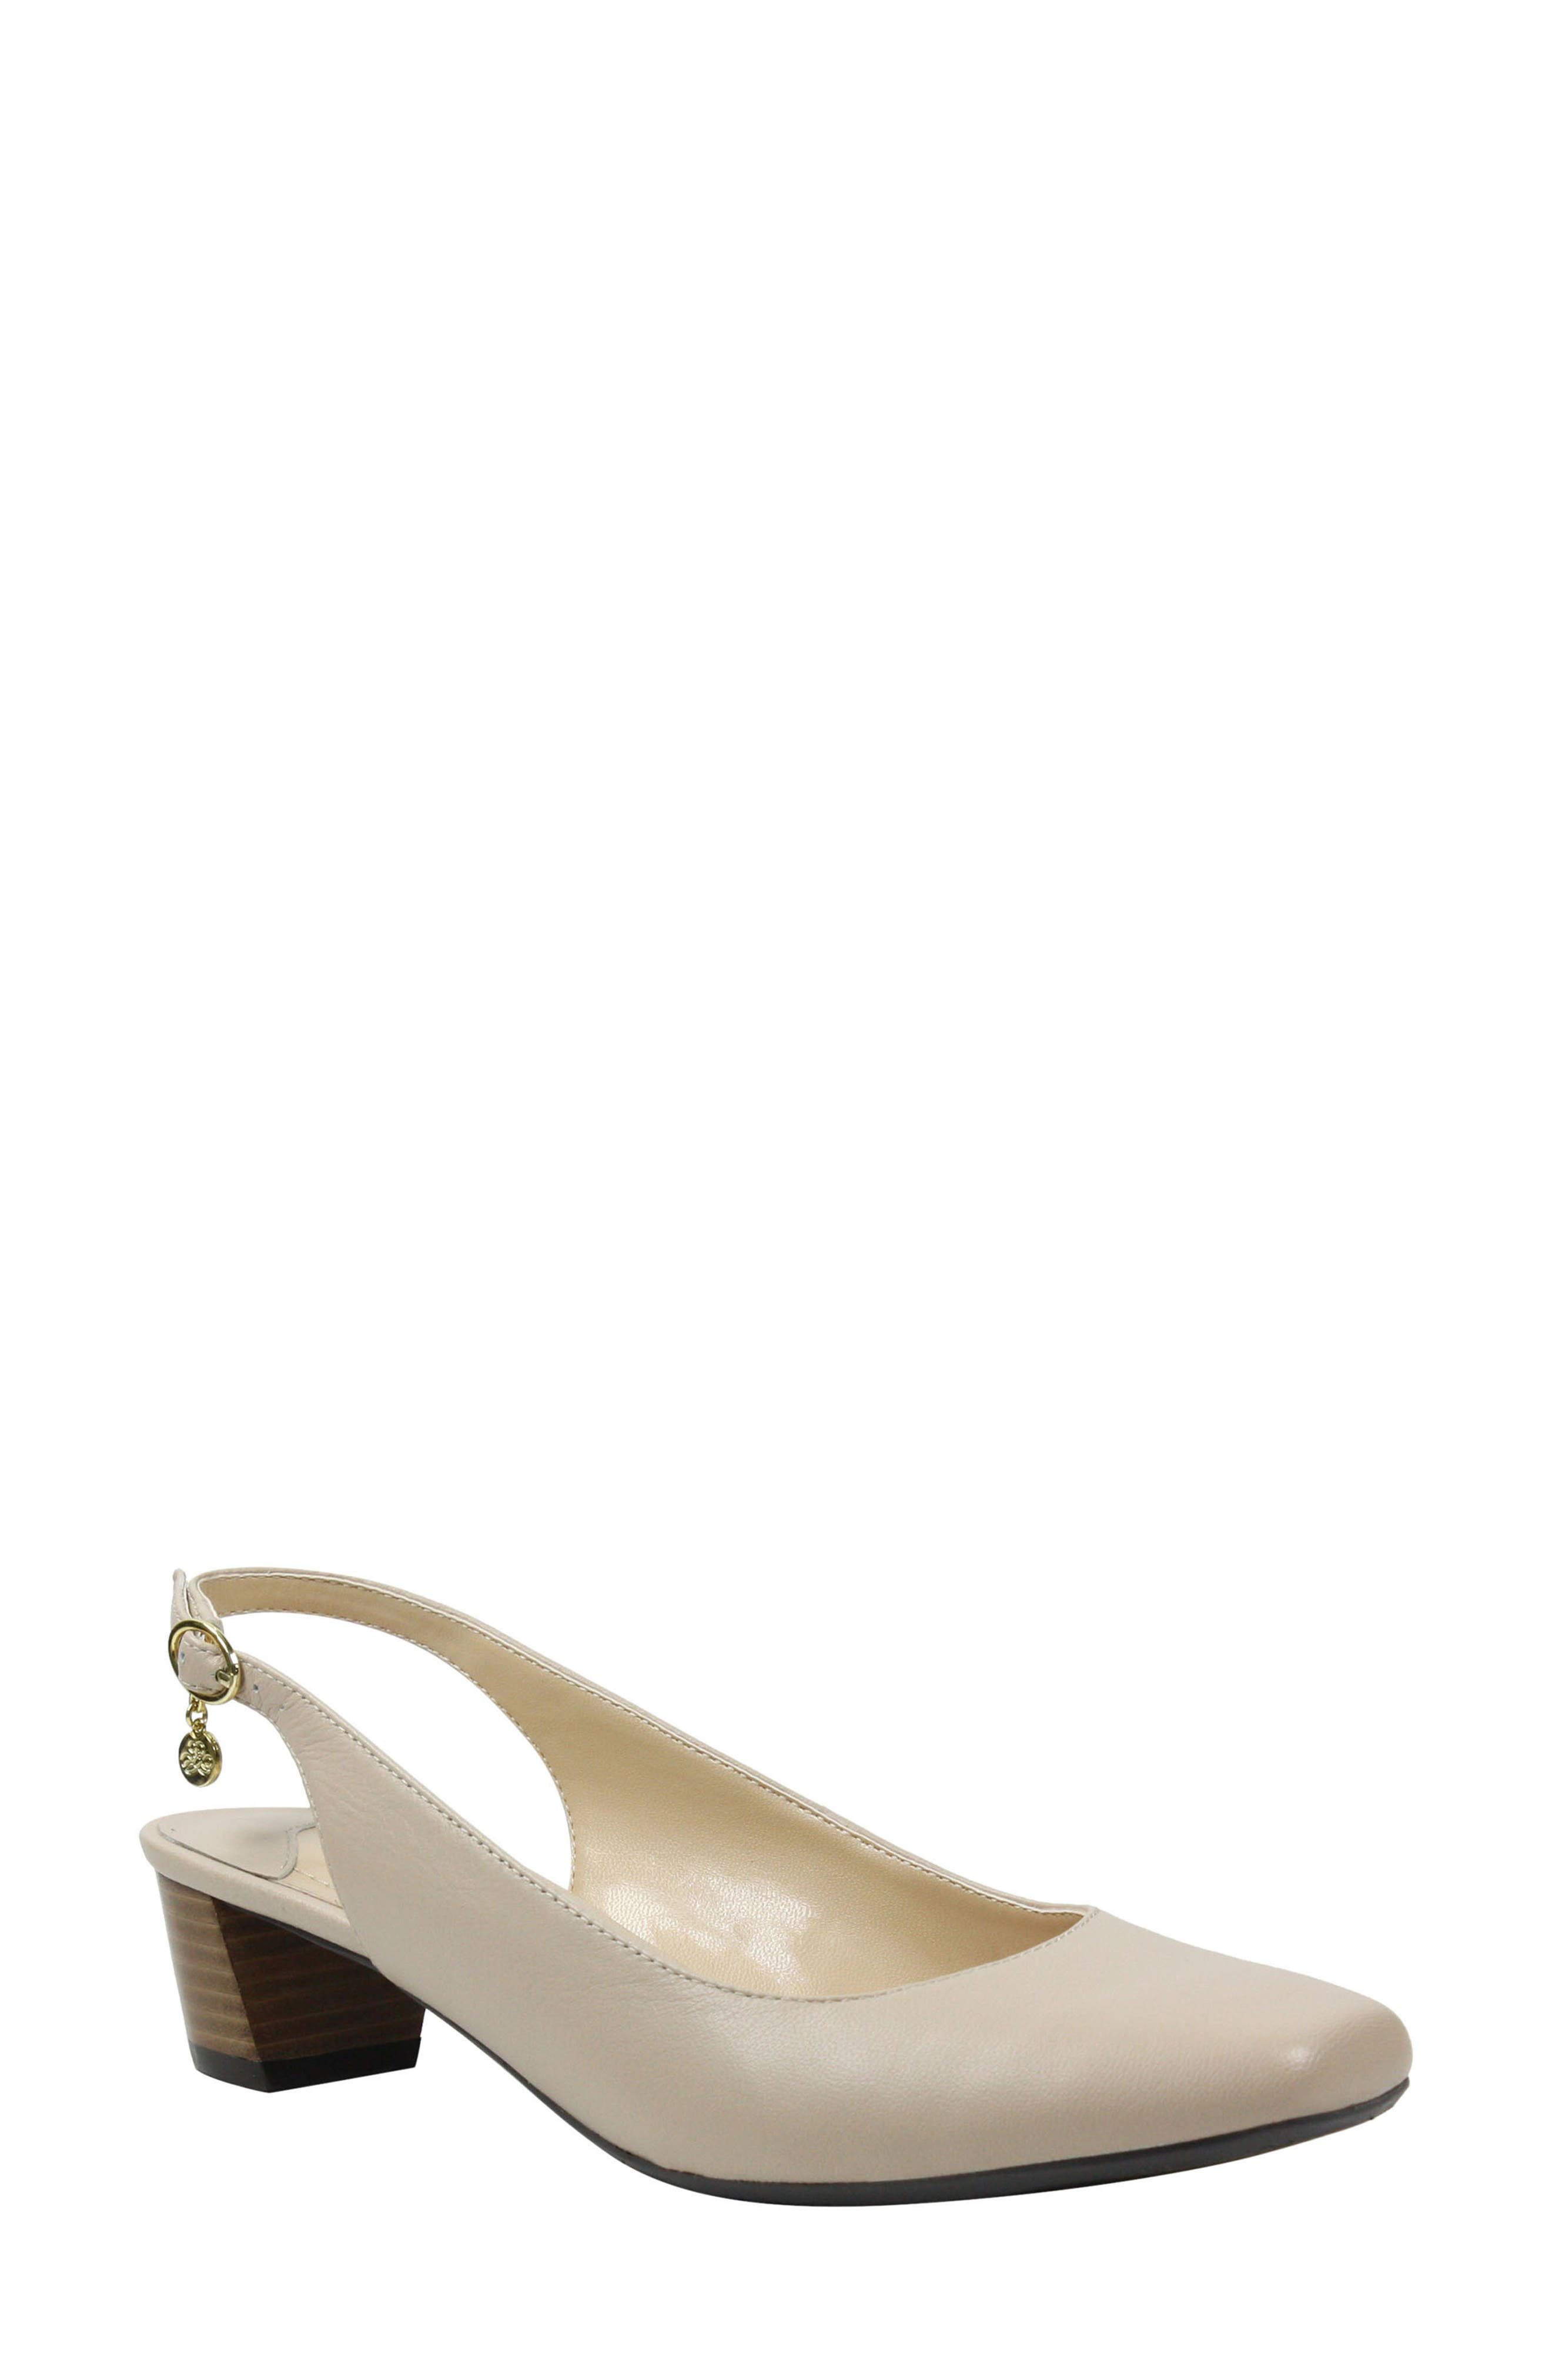 Blandi Slingback Pump by J. ReneÉ